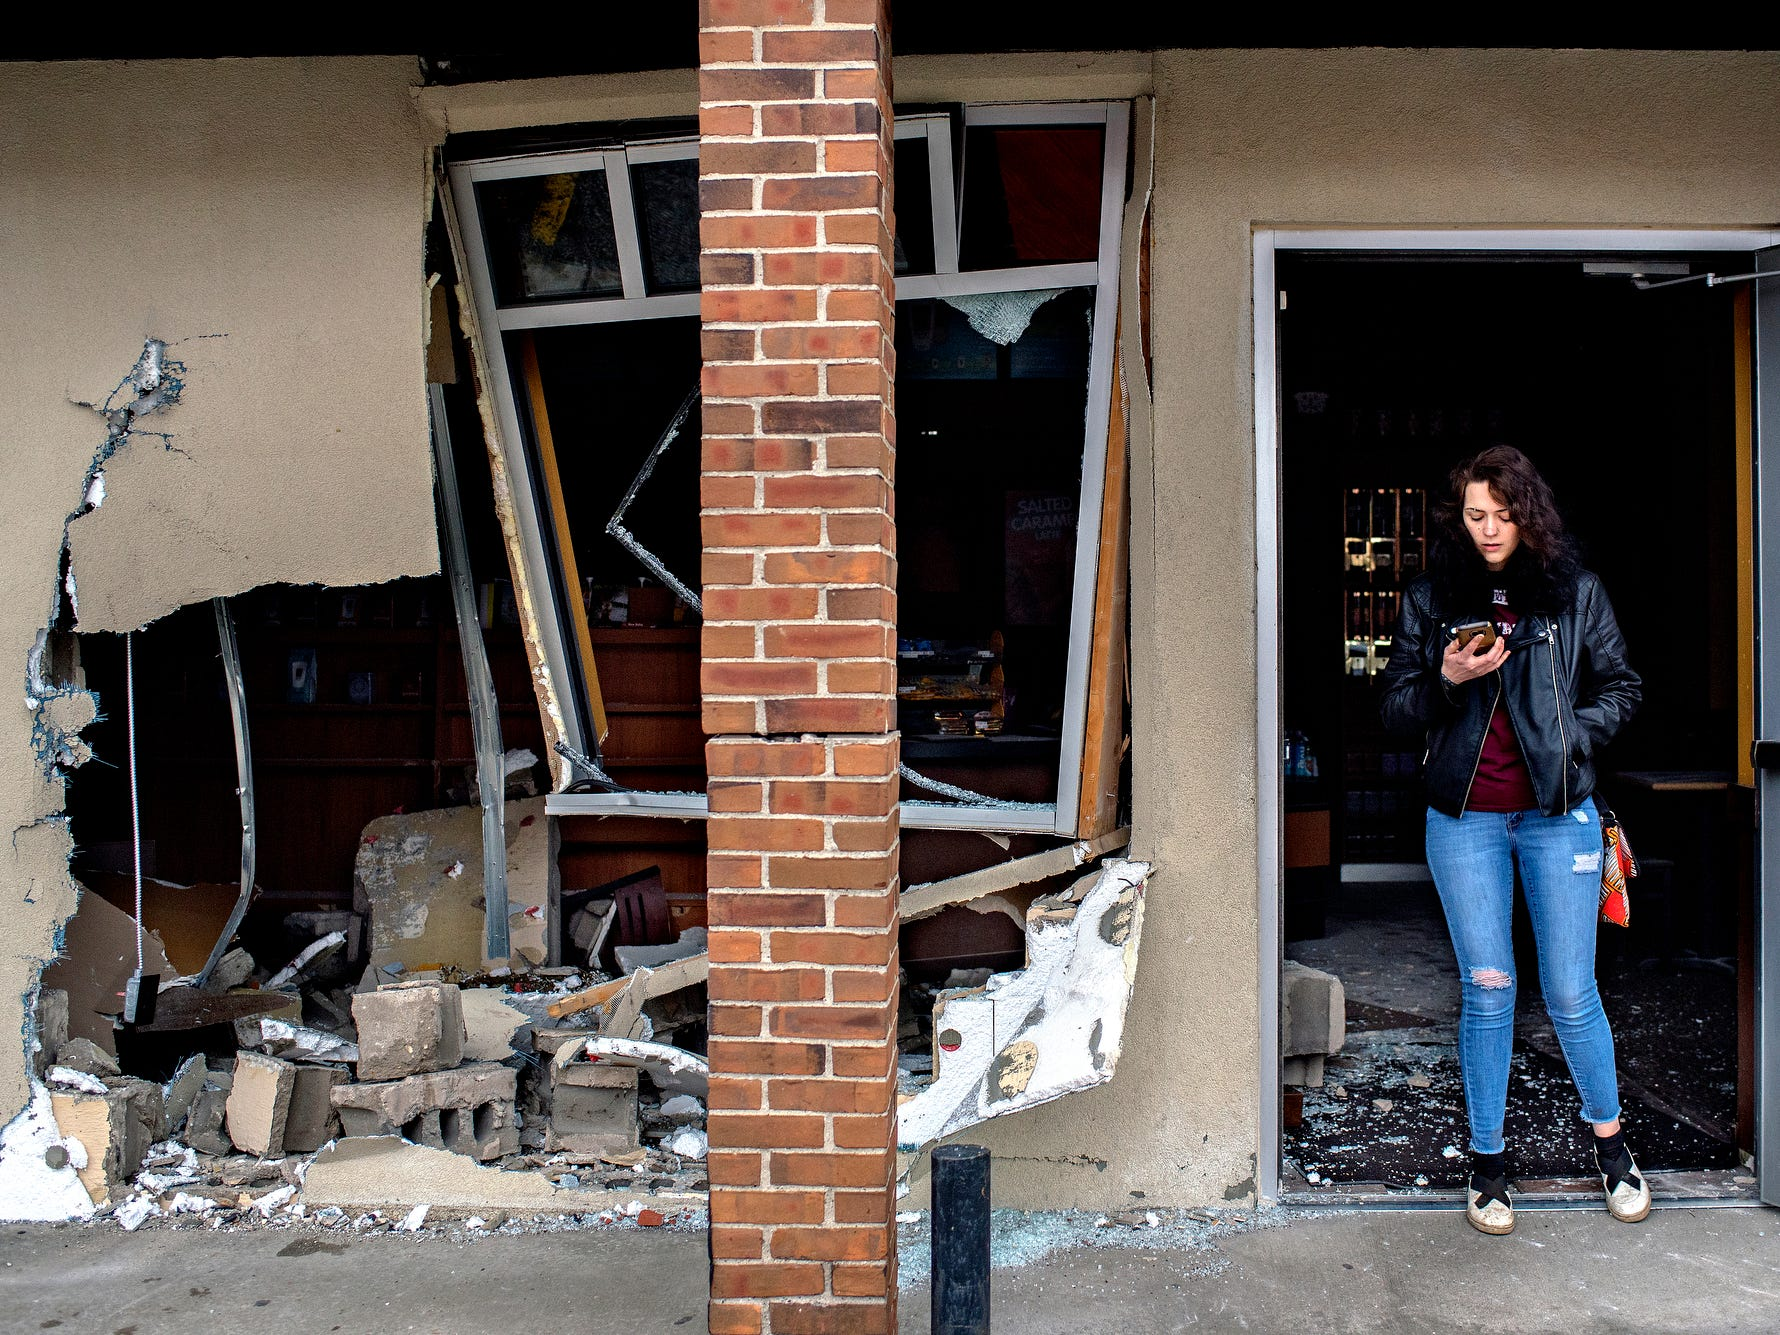 Employee Stacie Tomkins stands in the doorway next to the site where a car crashed into the Biggby on South Cedar Street at the Holt Road intersection on Friday, April 13, 2018, in Holt. An elderly woman trying to leave a parking space had her car in drive instead of reverse causing her to drive through the building near the entrance. No one was hurt in the crash.